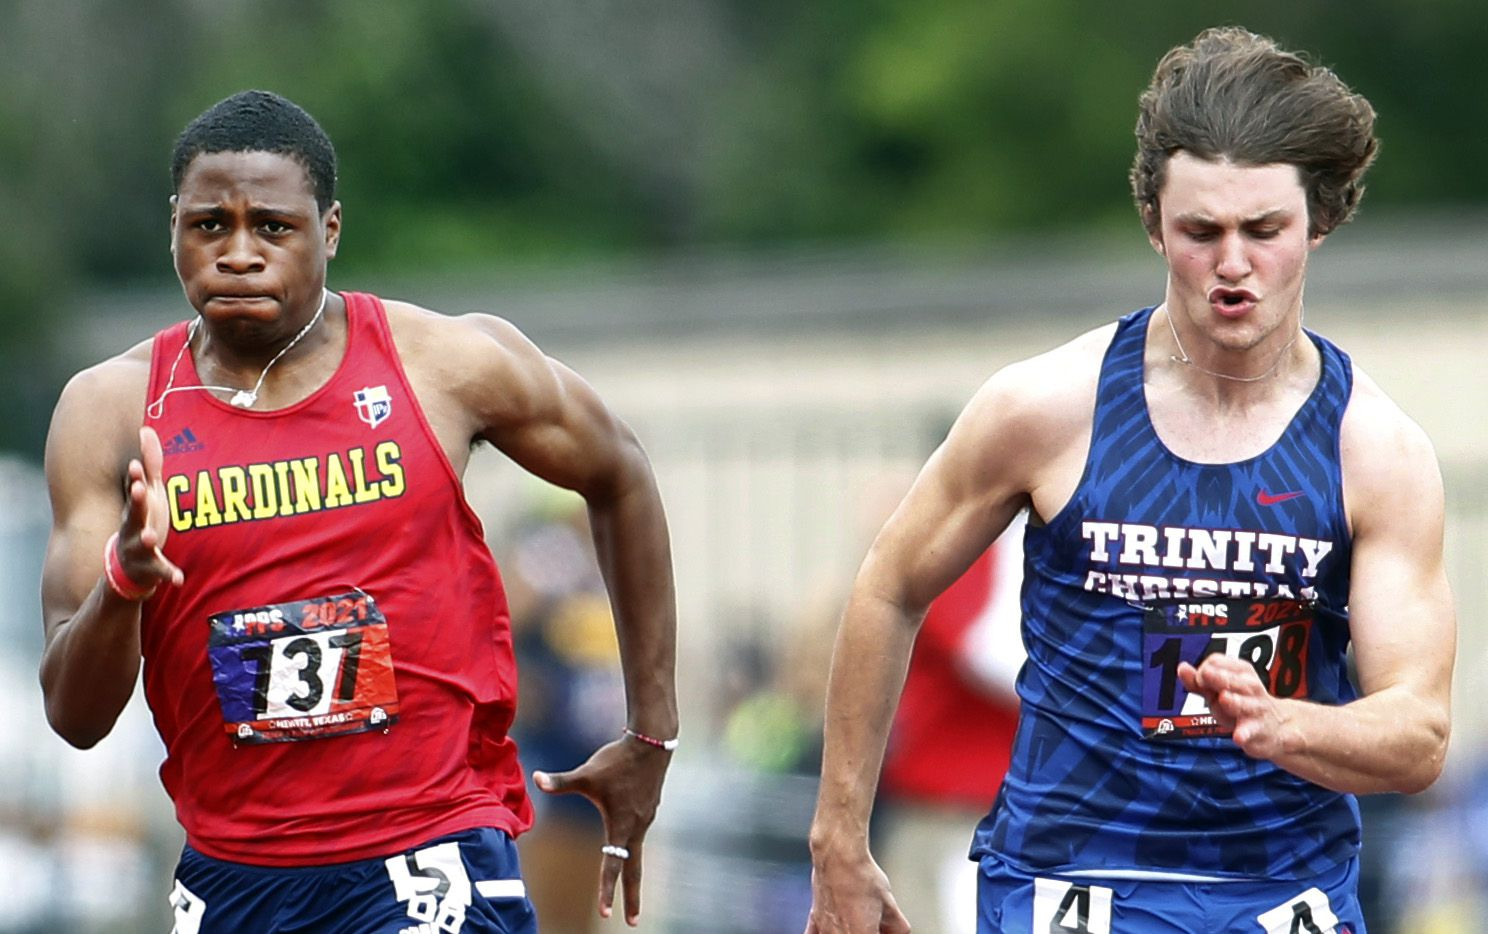 Trinity Christian-Addison's Luke Tredennick (right) races to victory in the TAPPS 6A boys 100-meter dash, running 11.22 on Saturday at the TAPPS state track and field meet at Waco Midway's Panther Stadium.